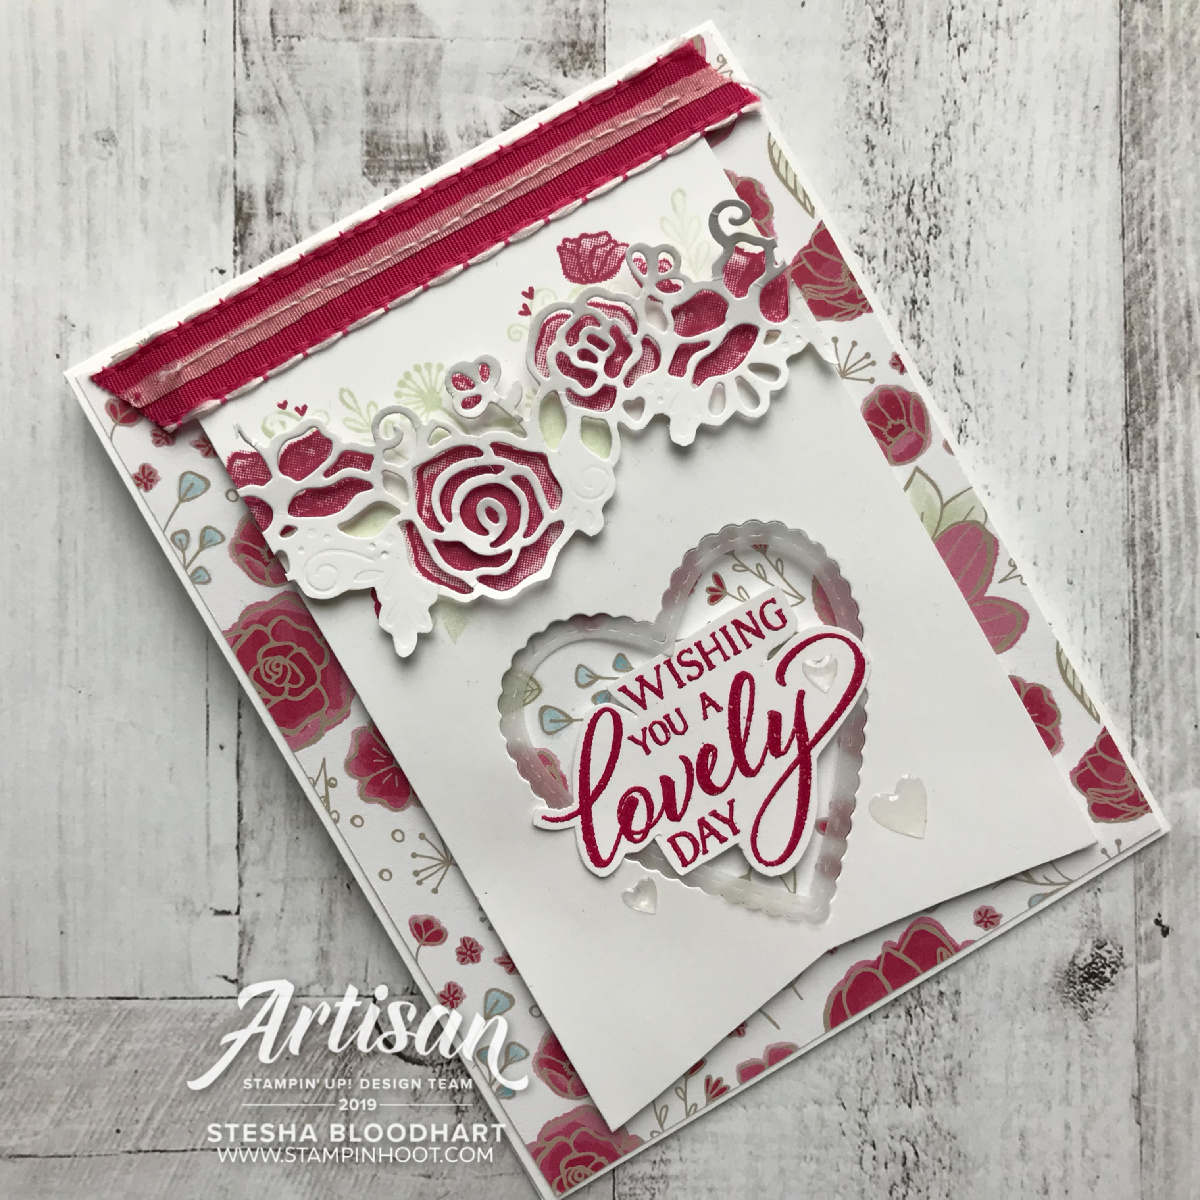 January-2019-Artisan-Design-Team-Blog-Hop-Forever-Lovely-Duo